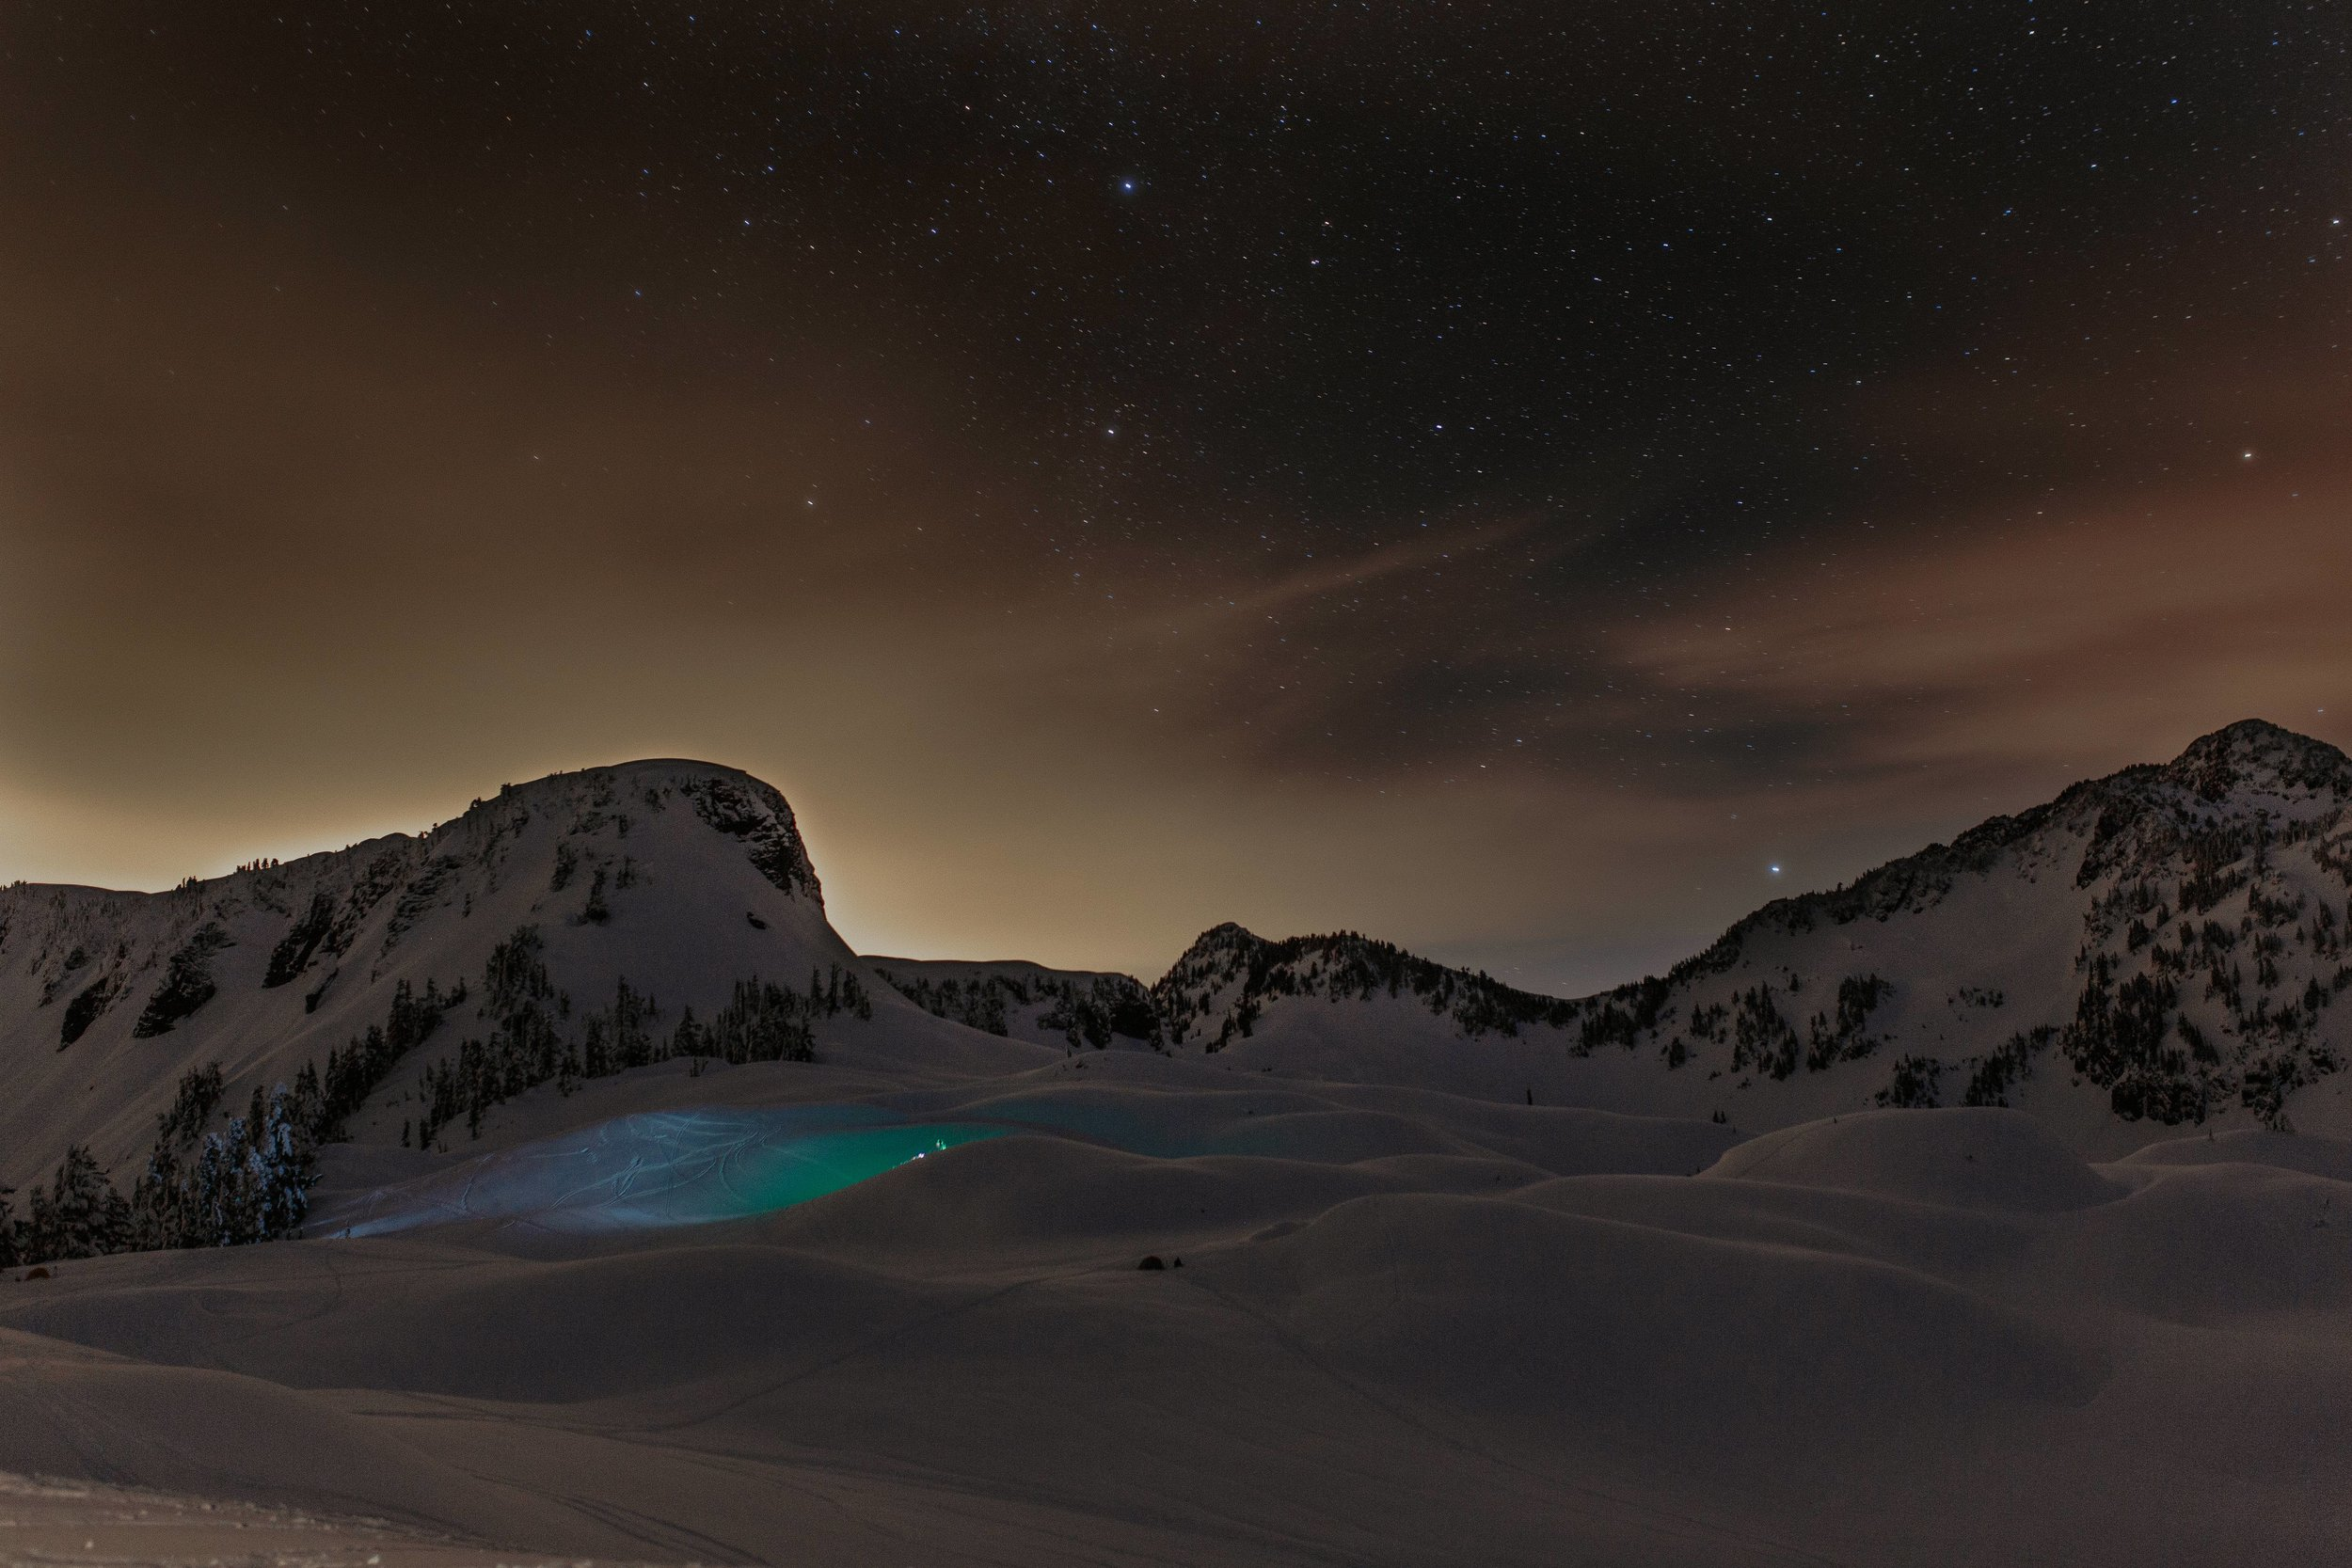 mount-baker-snow-camping-astrophotography-northern-lights.jpg